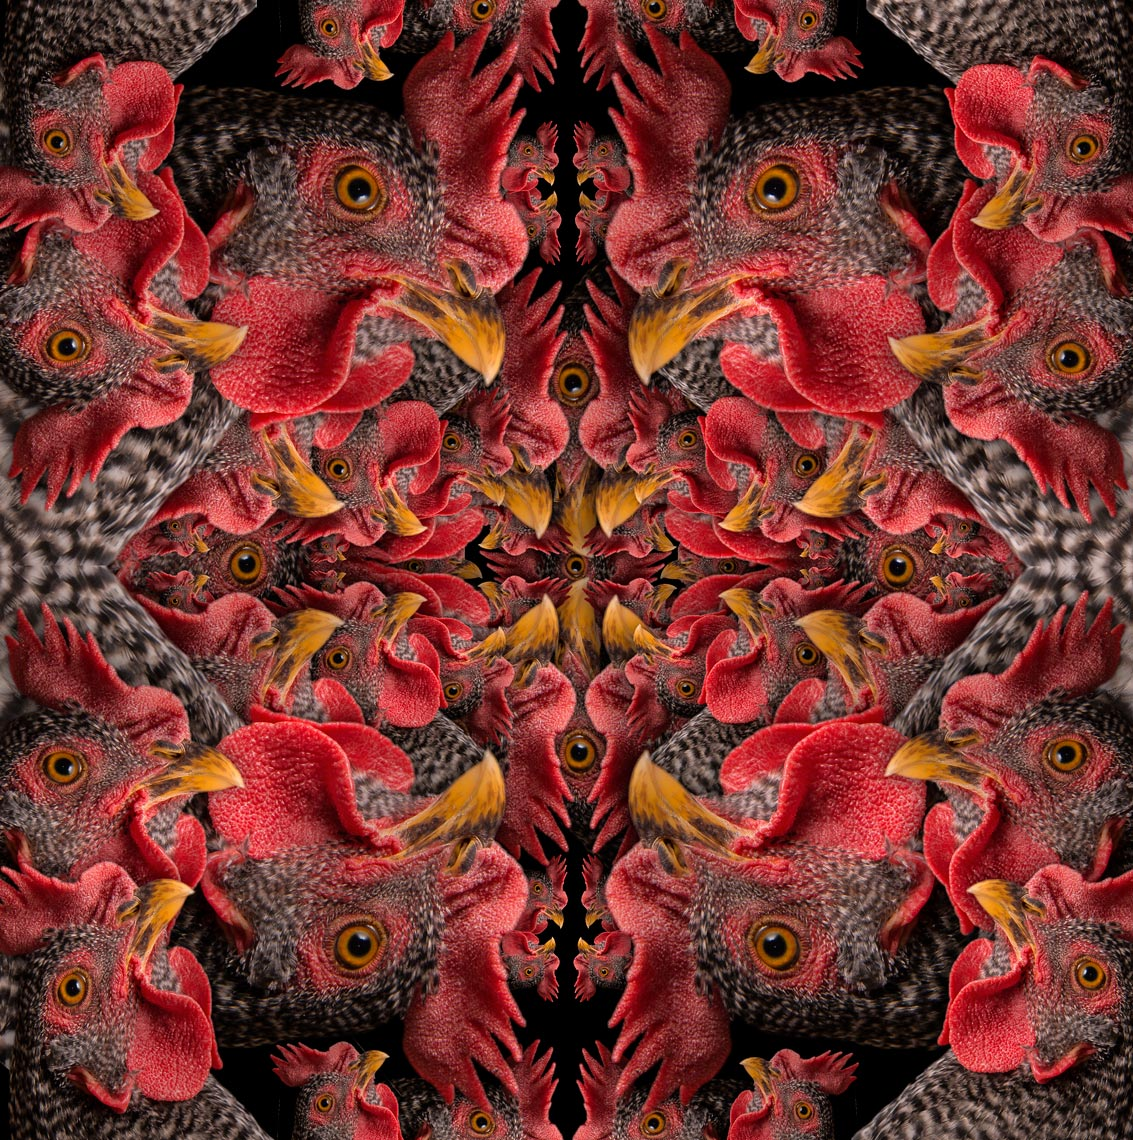 ChickenMultiplied03